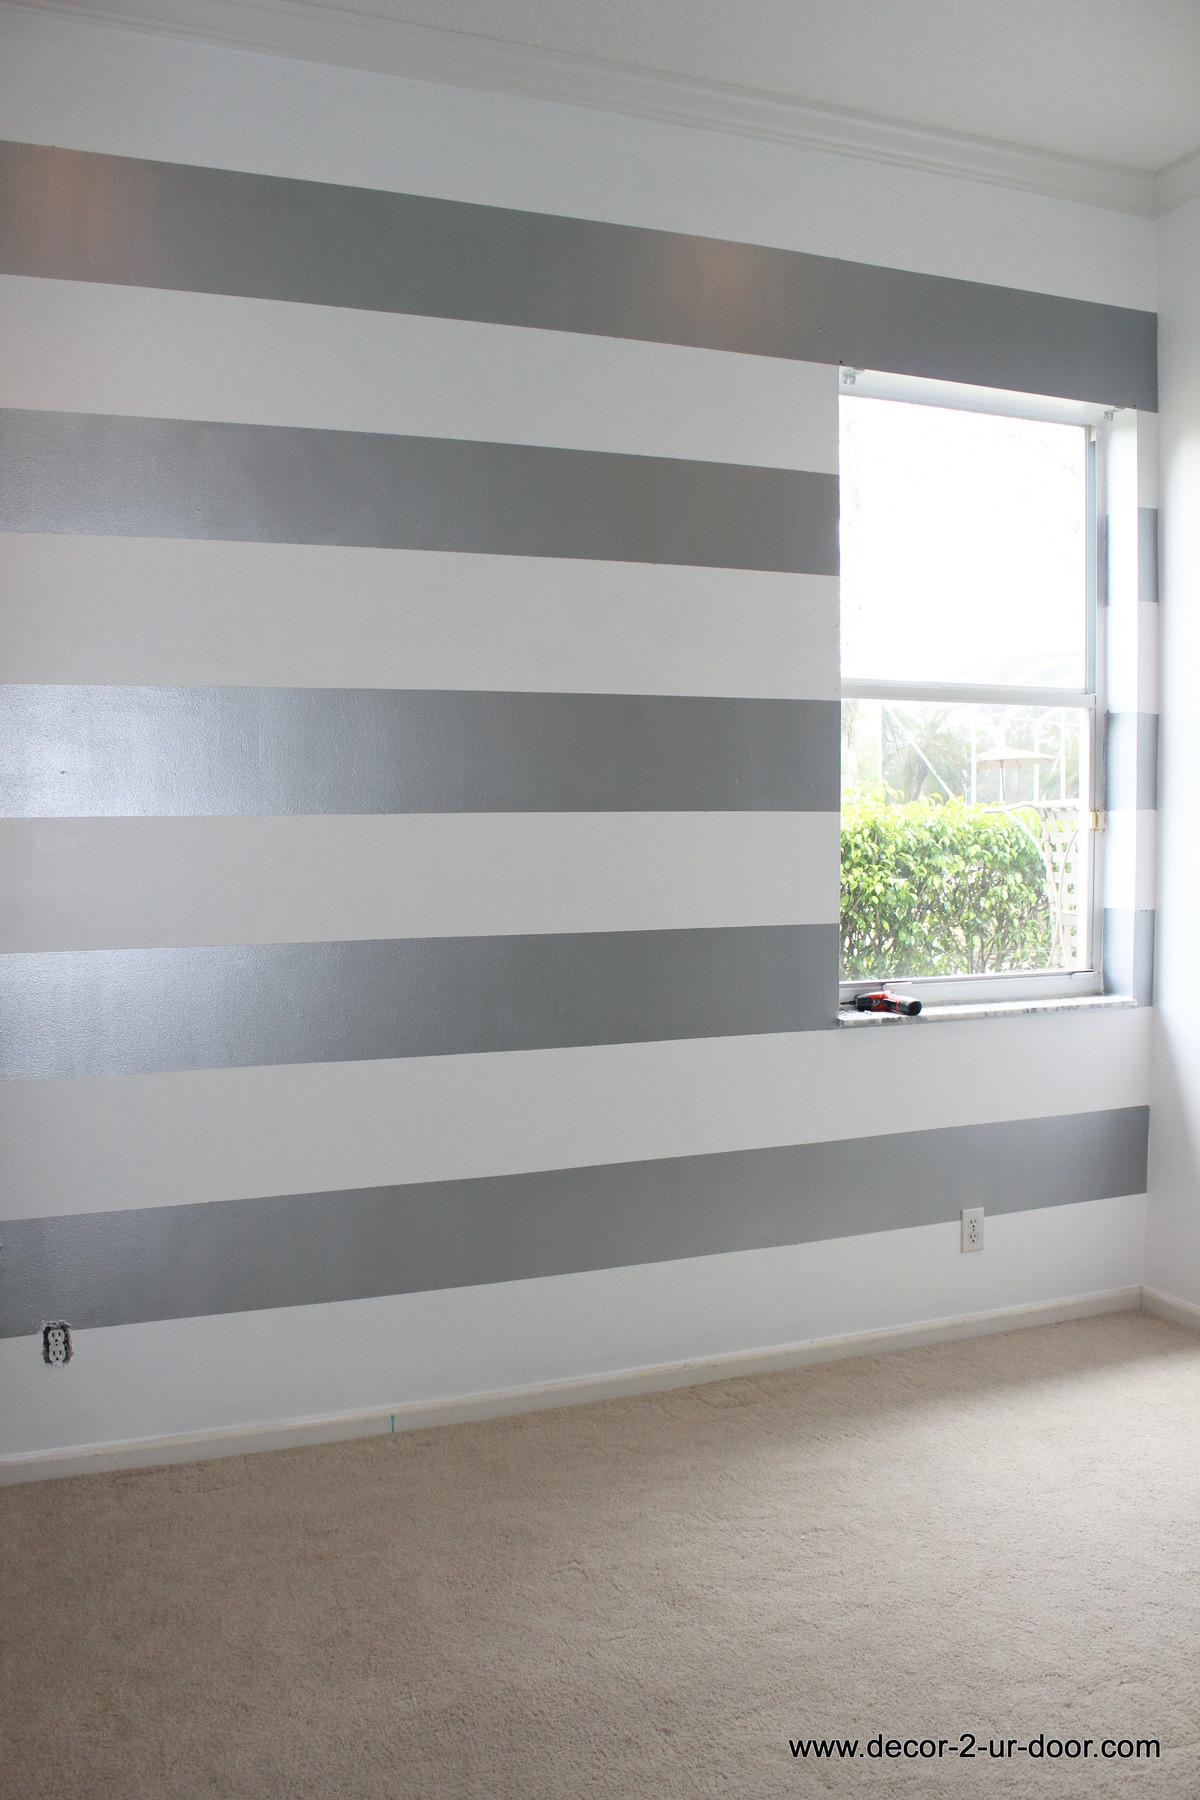 Bedroom Artsy Striped Accent Wall Ideas